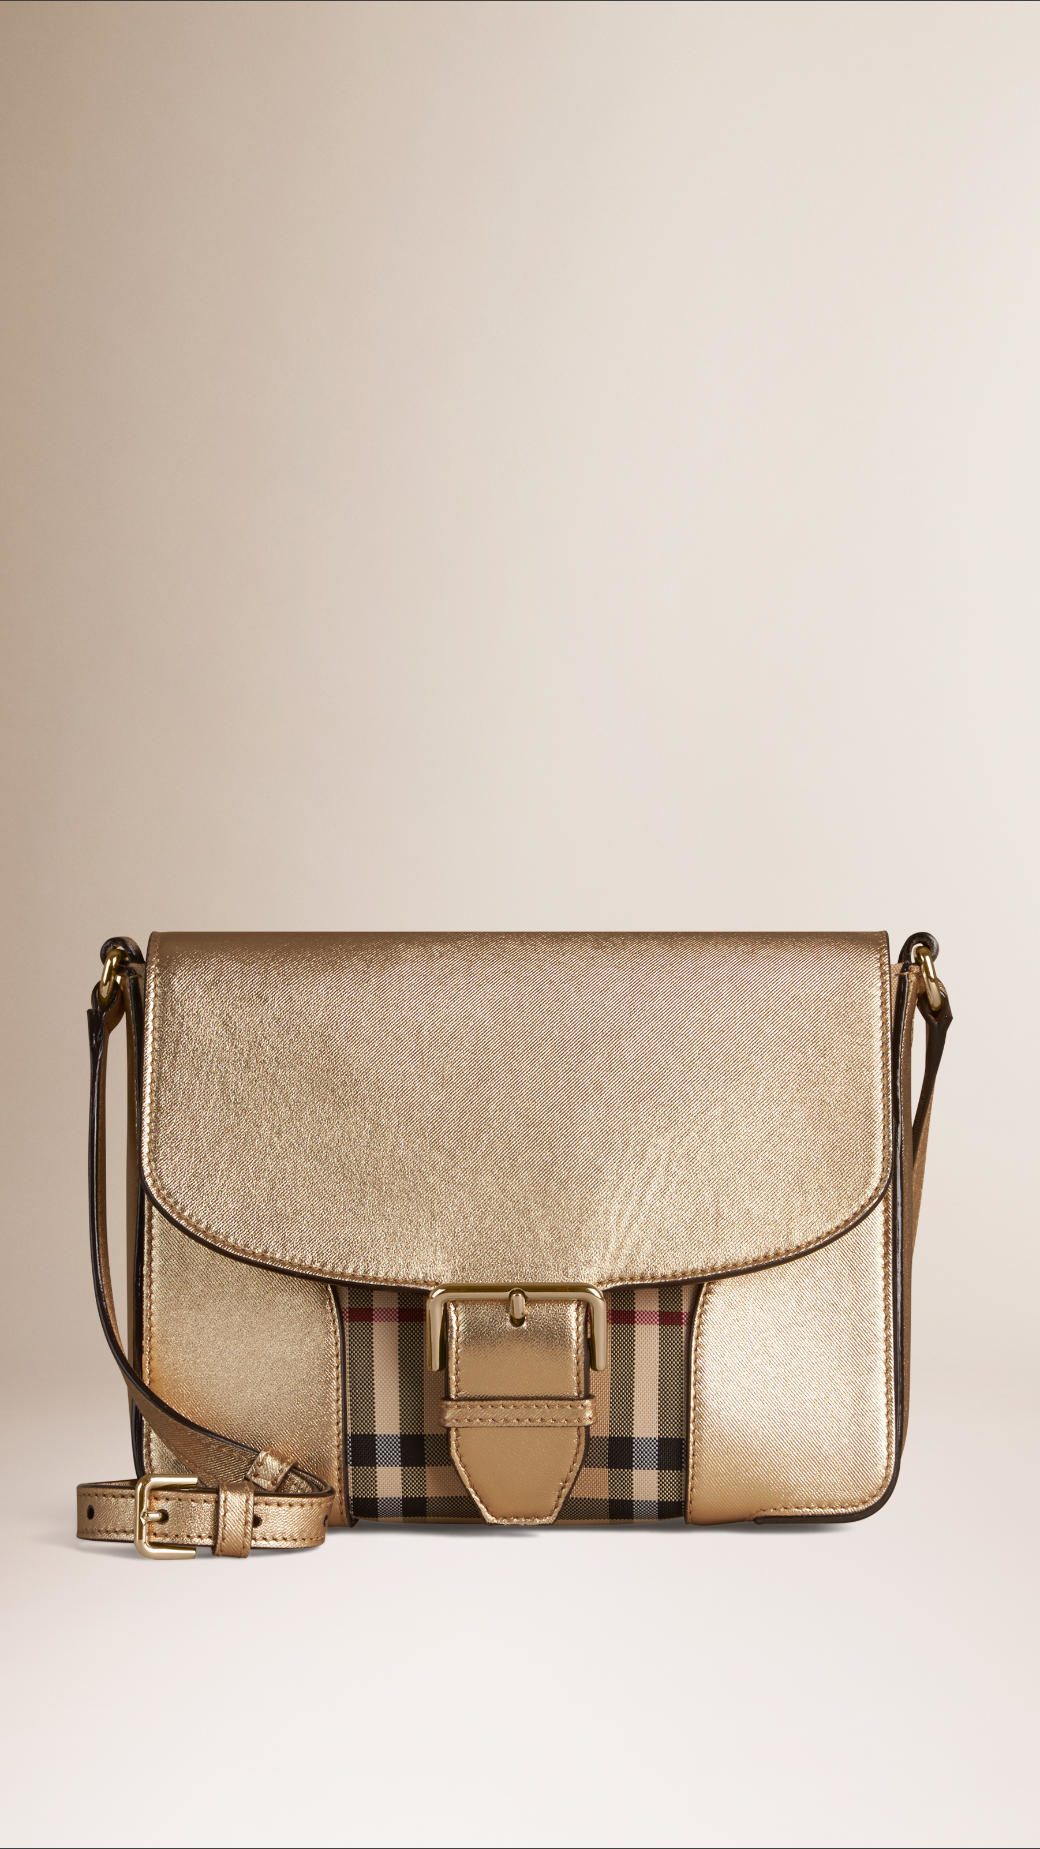 ec84babe8cb2 Lyst - Burberry Small Horseferry Check And Leather Crossbody Bag in Natural